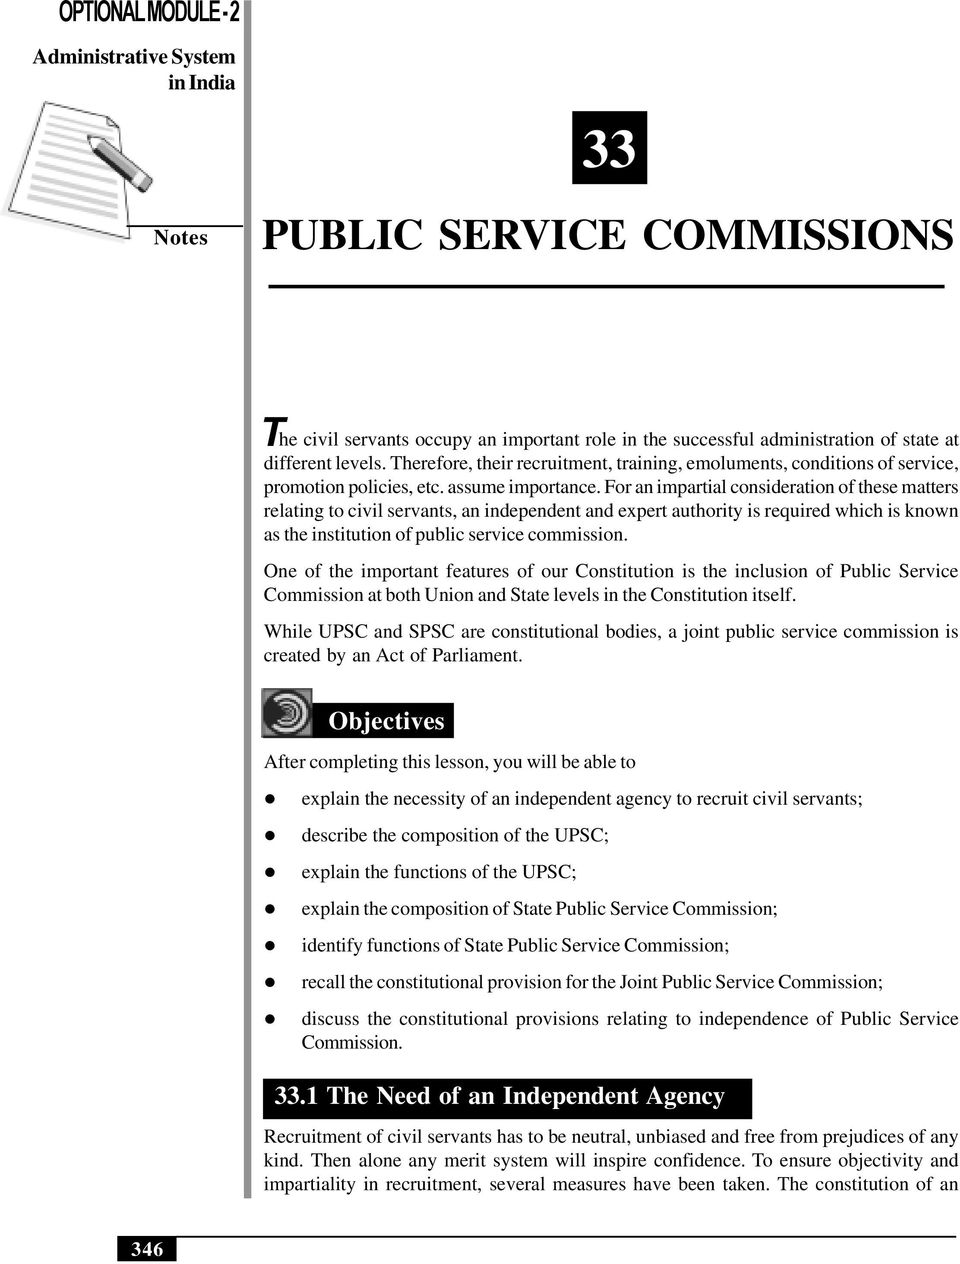 For an impartial consideration of these matters relating to civil servants, an independent and expert authority is required which is known as the institution of public service commission.